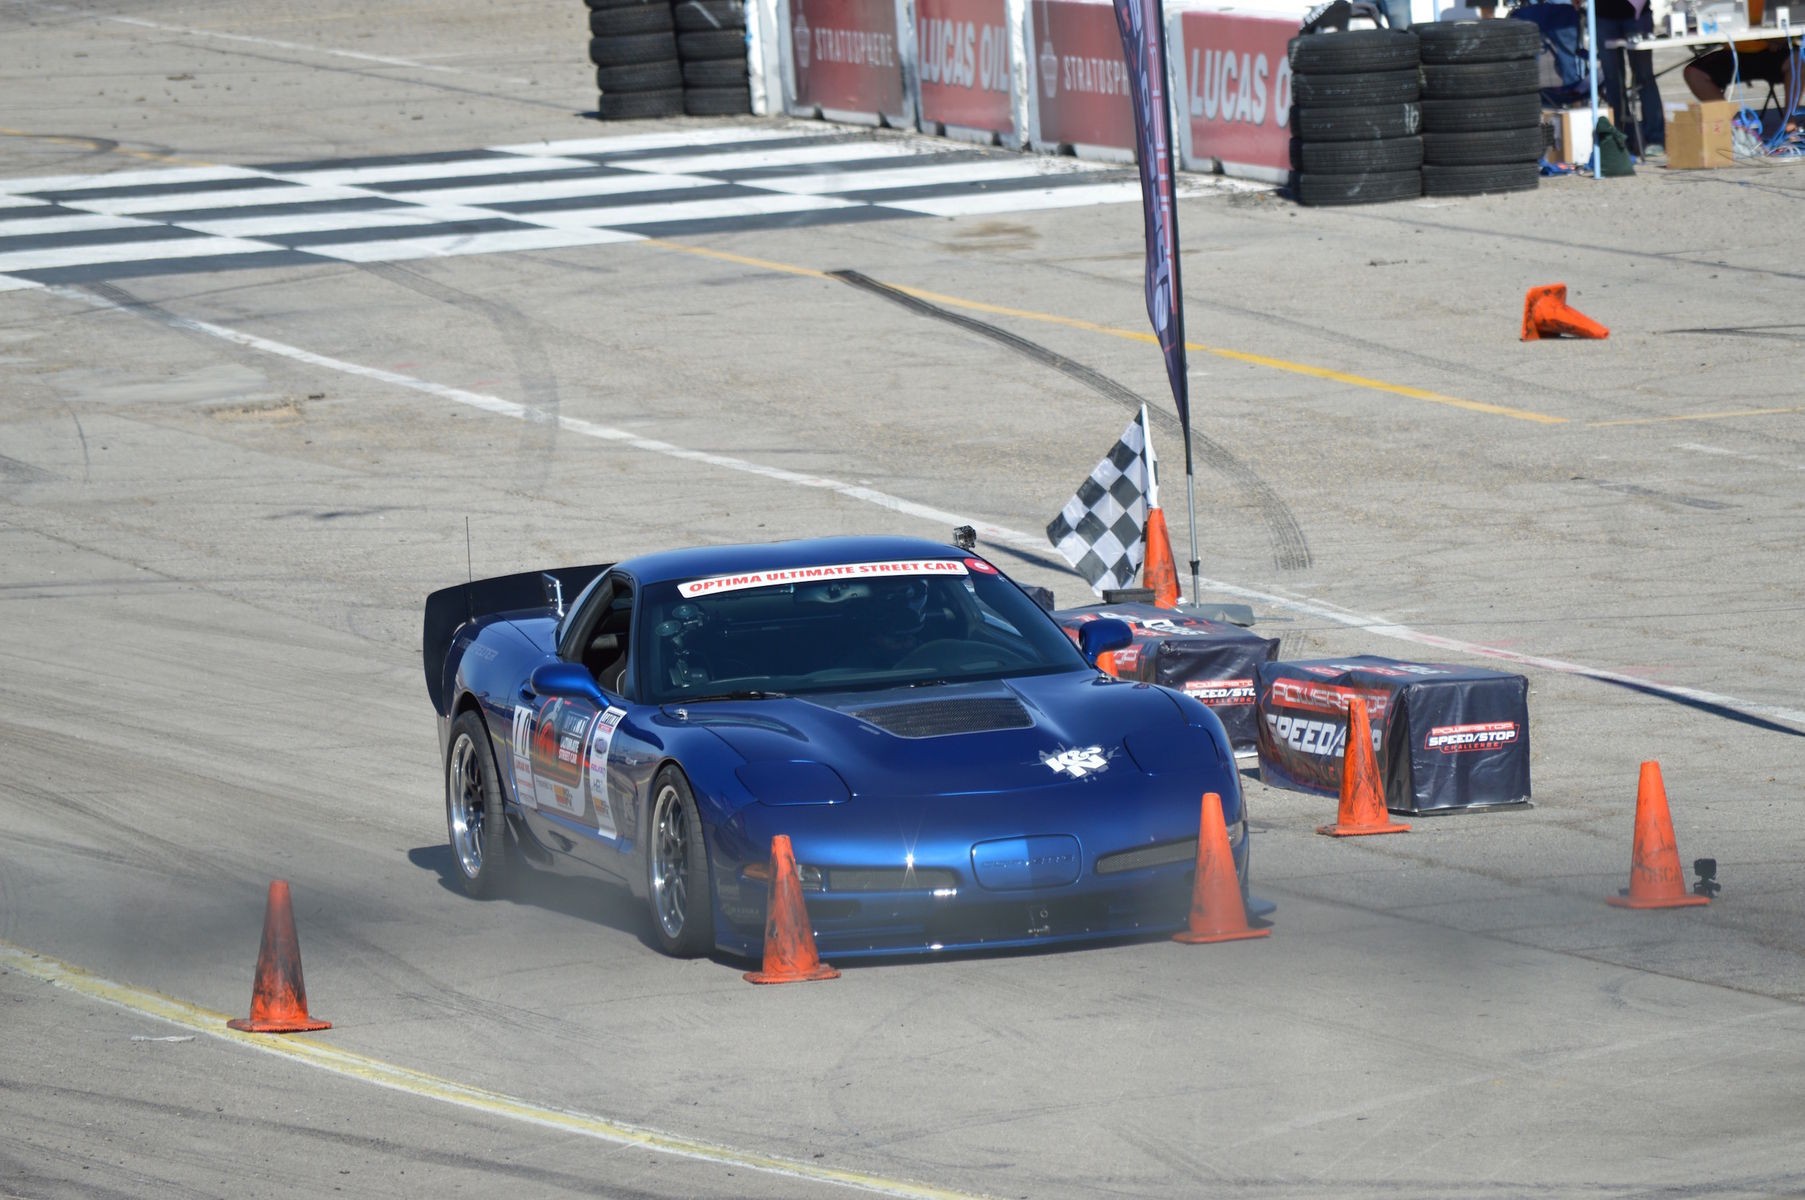 1998 Chevrolet Corvette Z06 | Danny Popp Wins Third Consecutive Optima Ultimate Street Car Invitational Championship on Forgeline GA3R Wheels